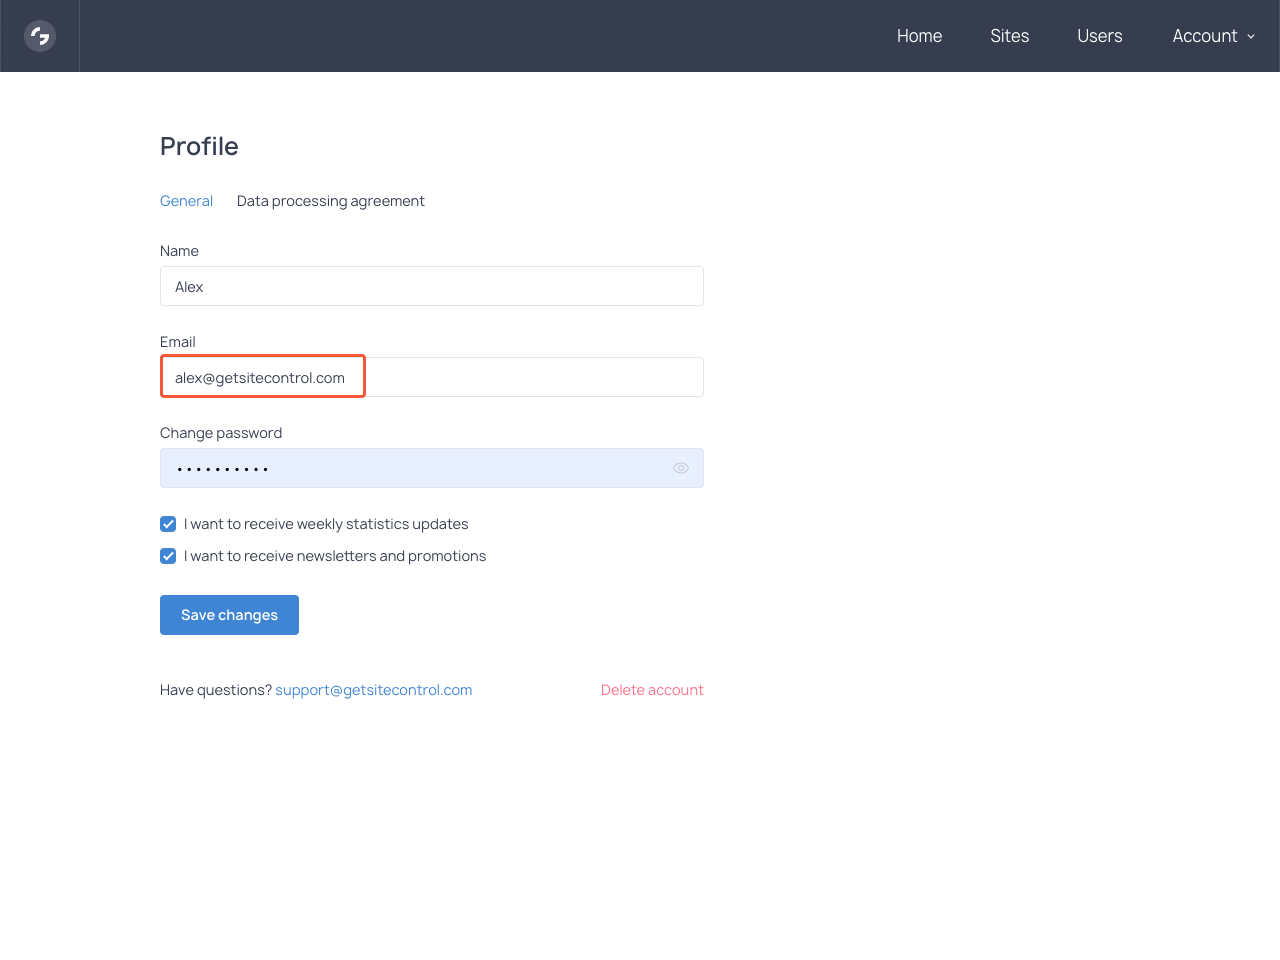 Adding a new email address in the Profile section